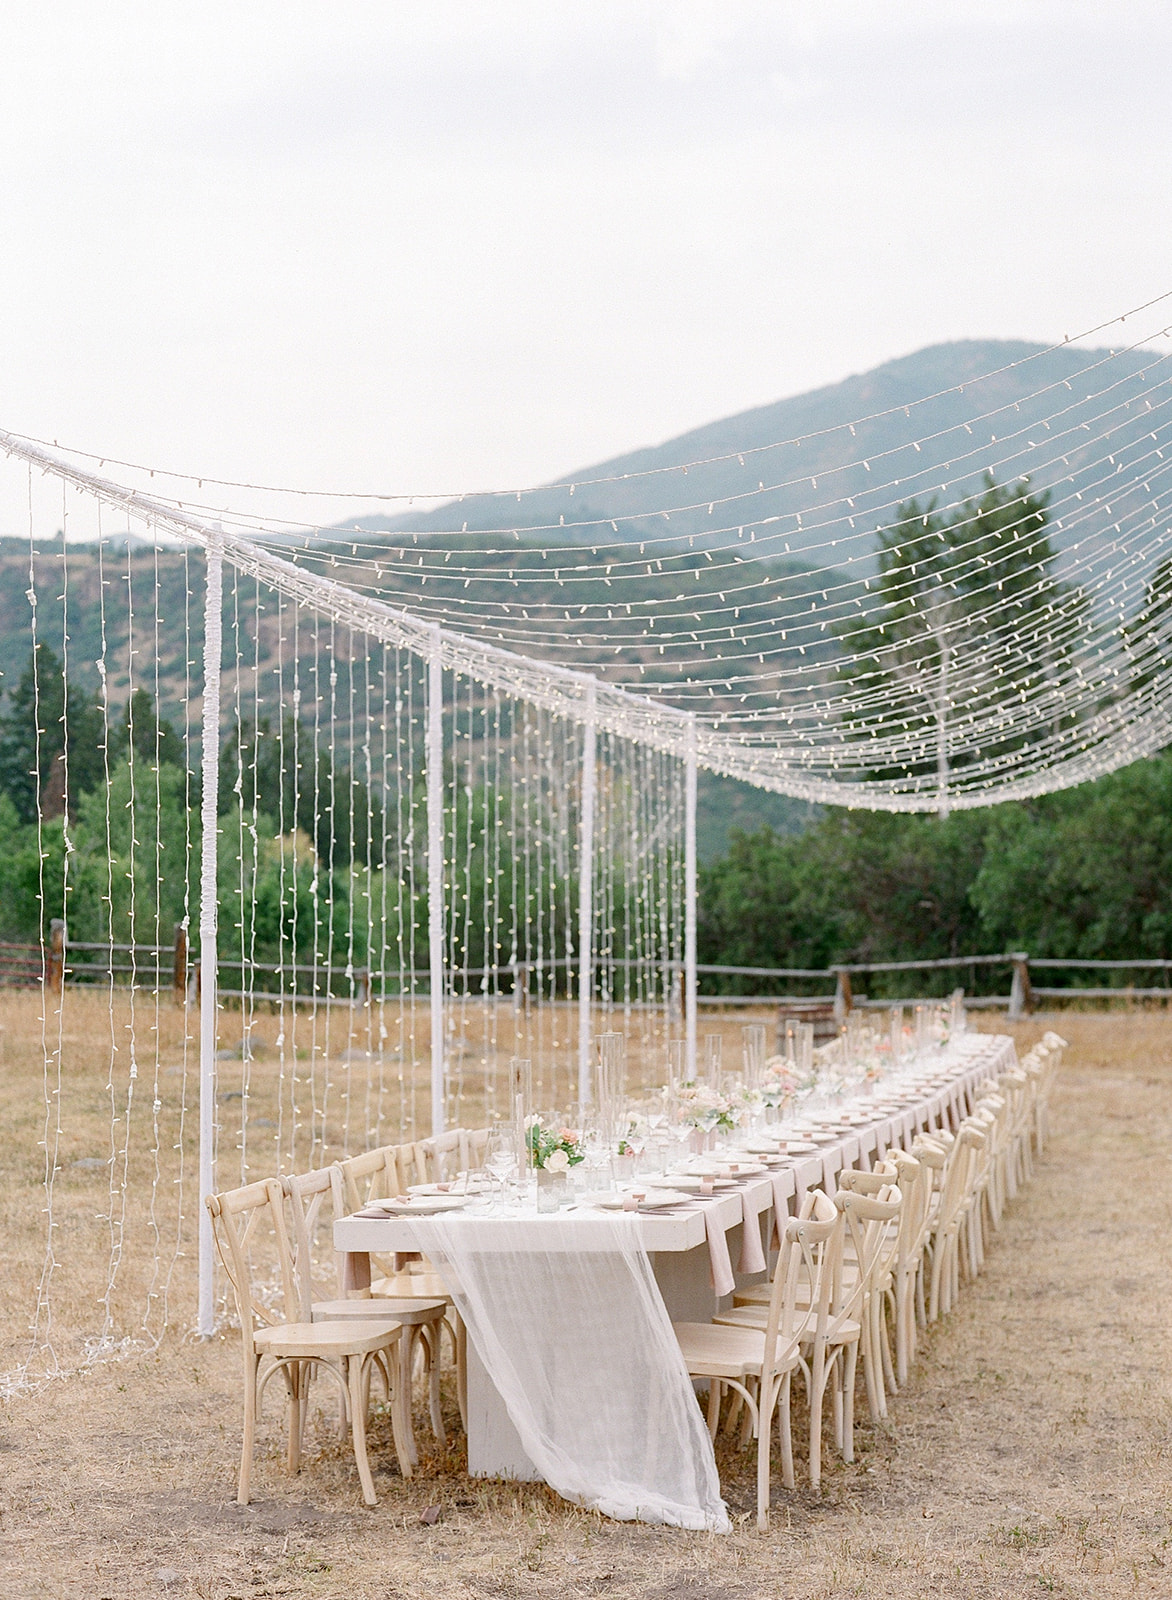 Rustic Table Settings with Hanging Lights at Summer Wedding in the Utah Mountains